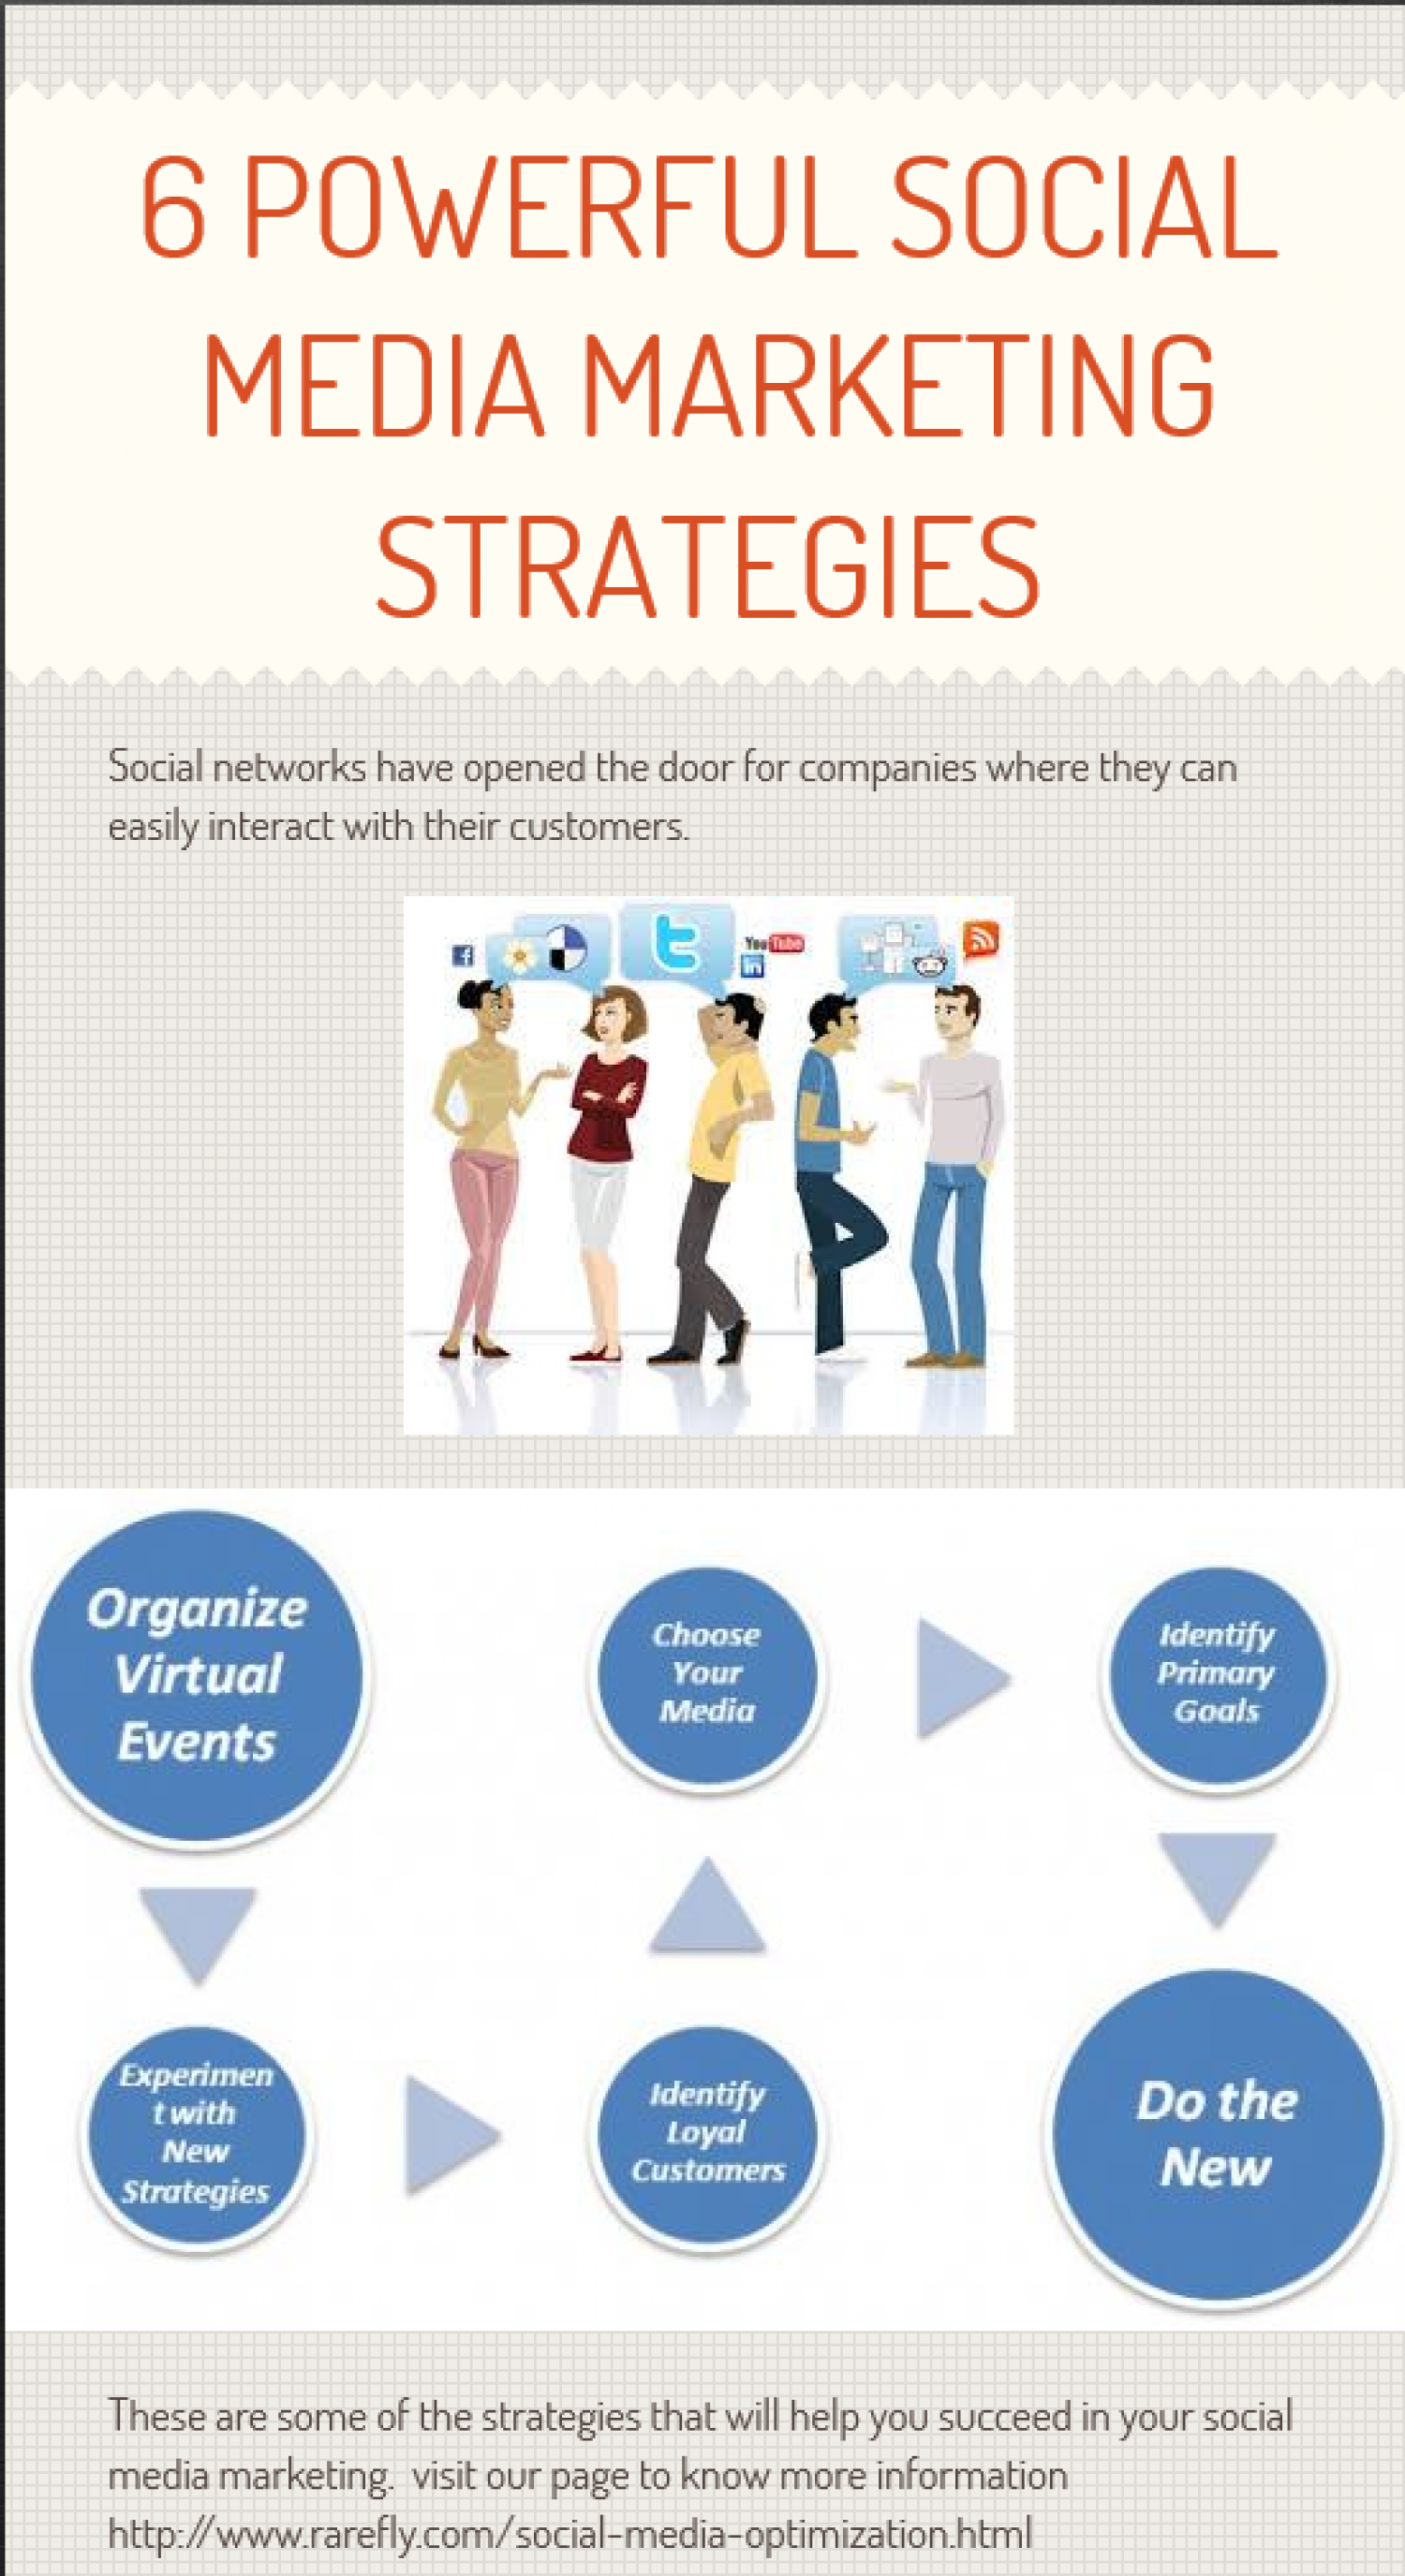 6 Powerful Mantras of Social Media Marketing Strategies Infographic